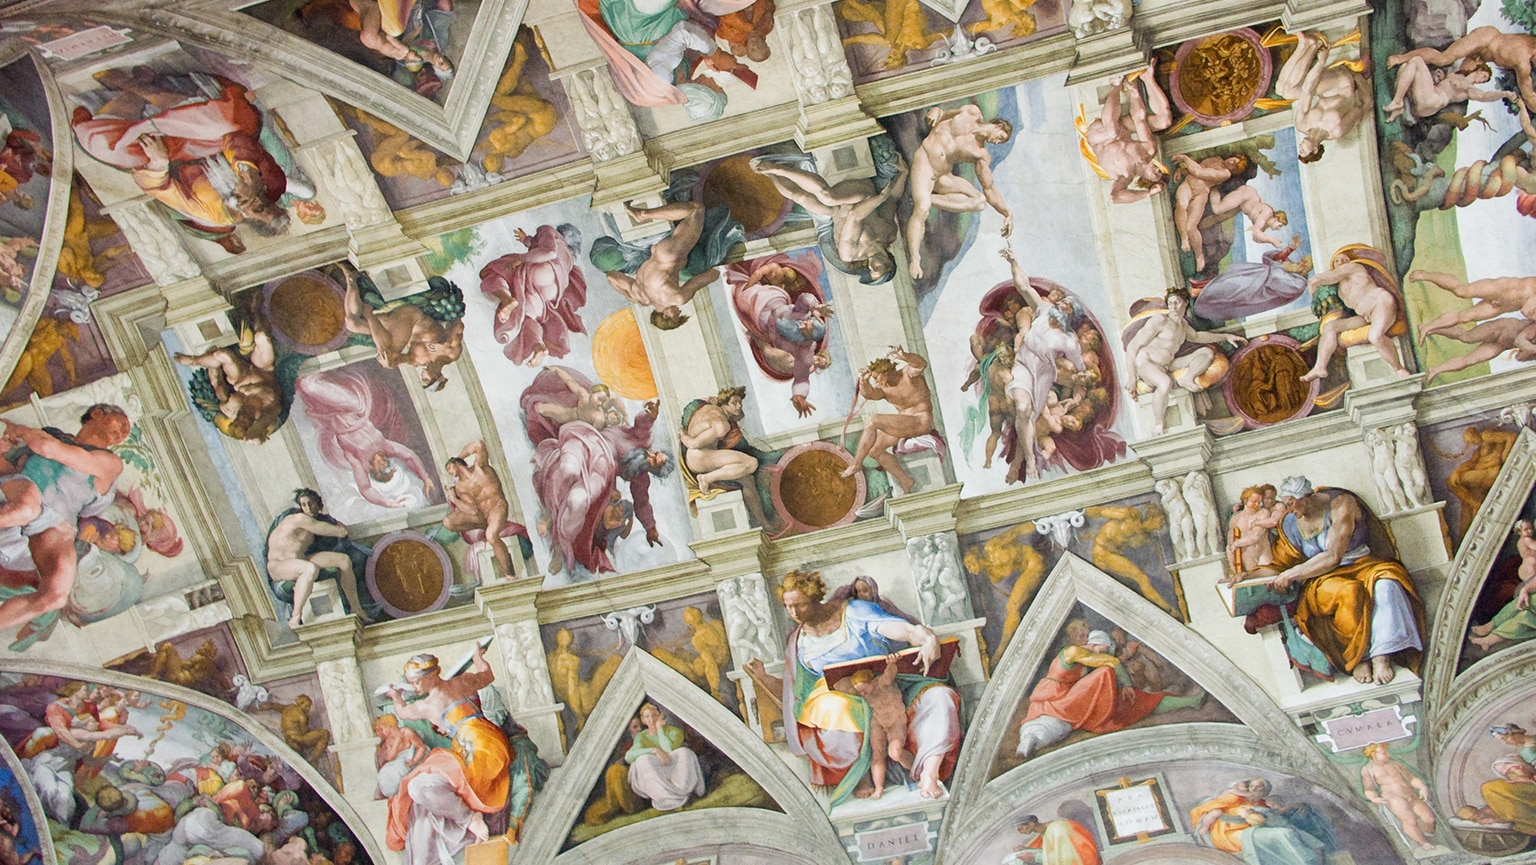 Michelangelo—The Sistine Chapel Ceiling | The Great Courses Plus